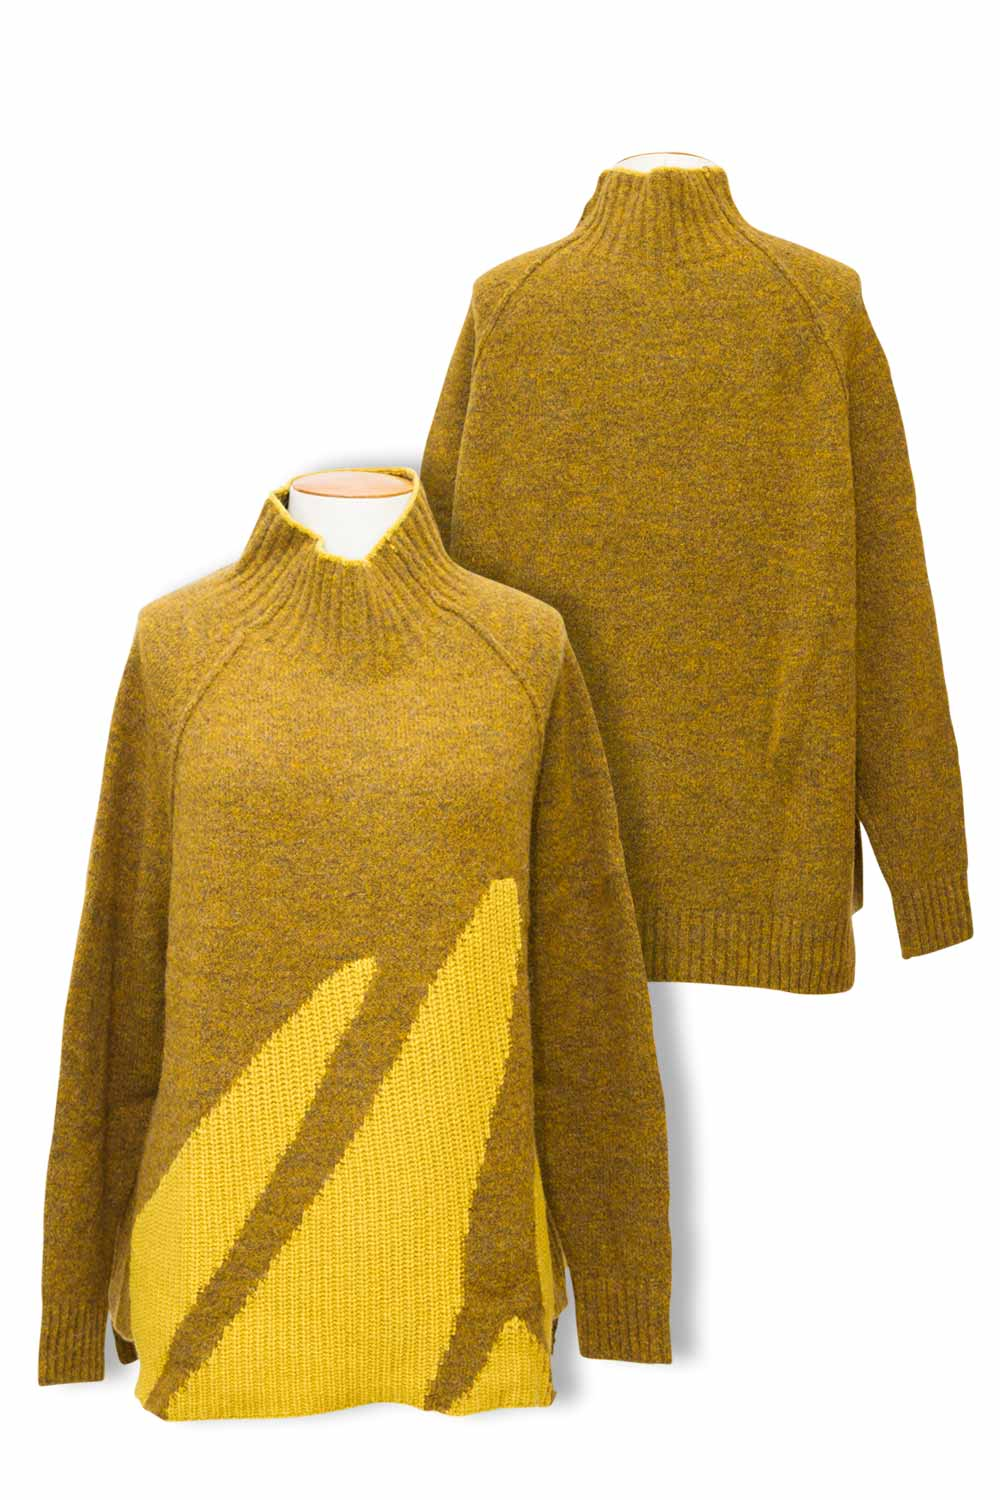 LD -and-co-rib-intarsia-knit